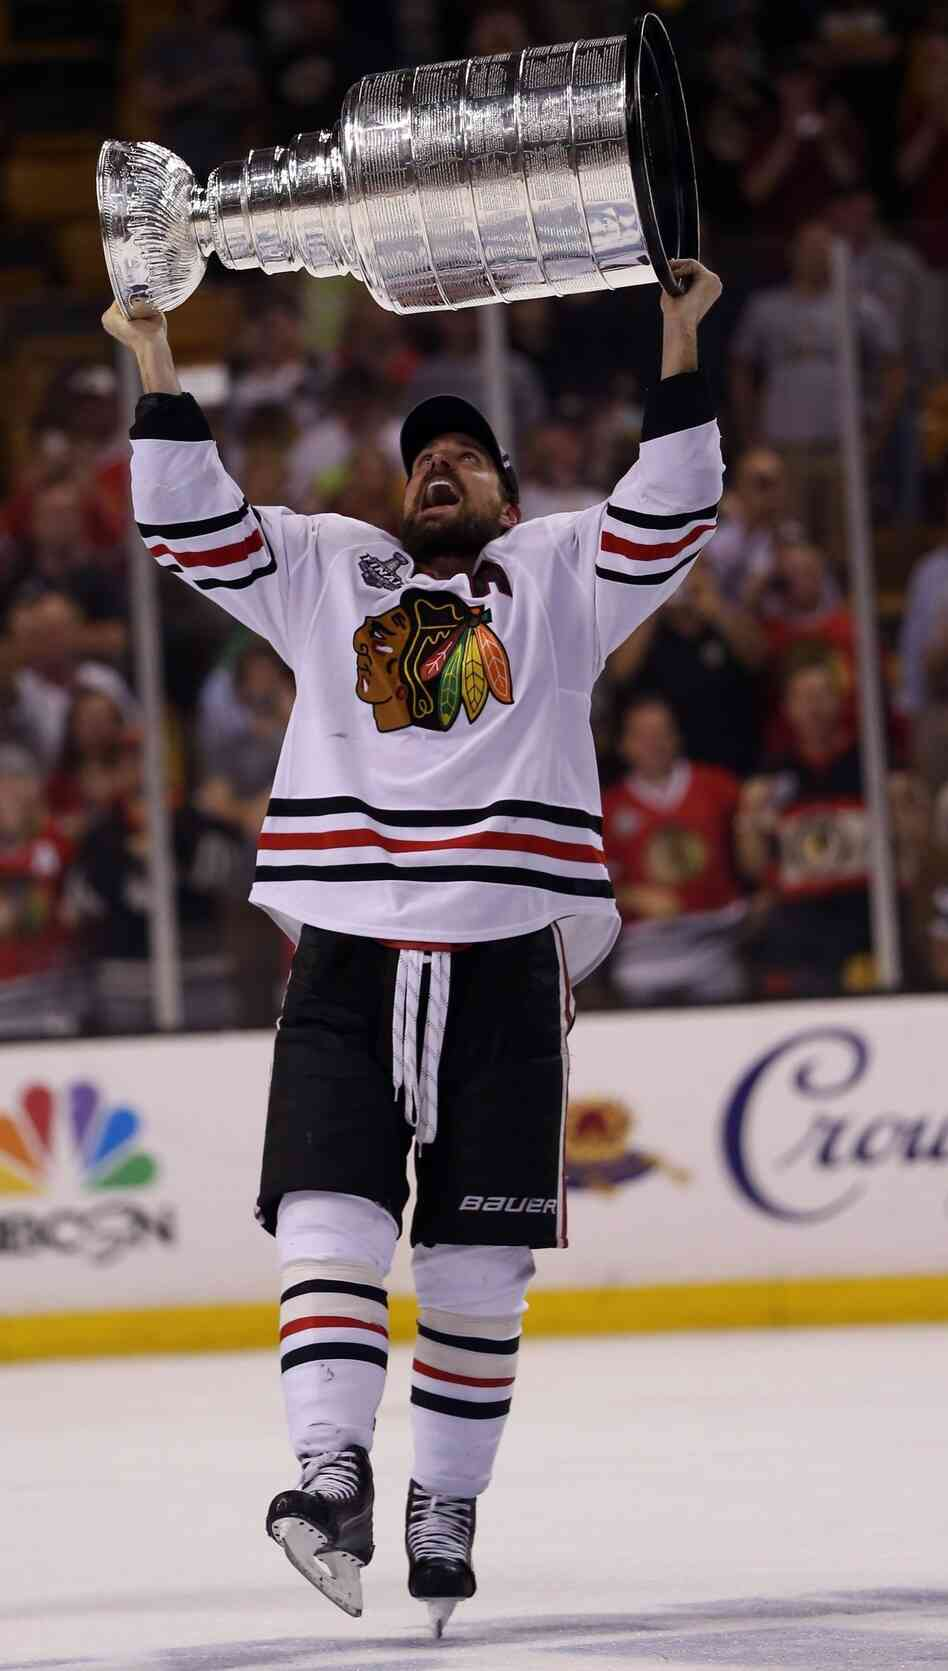 Blackhawks center Patrick Sharp lifts the Stanley Cup after Chicago's series-clinching win Monday night in Boston.